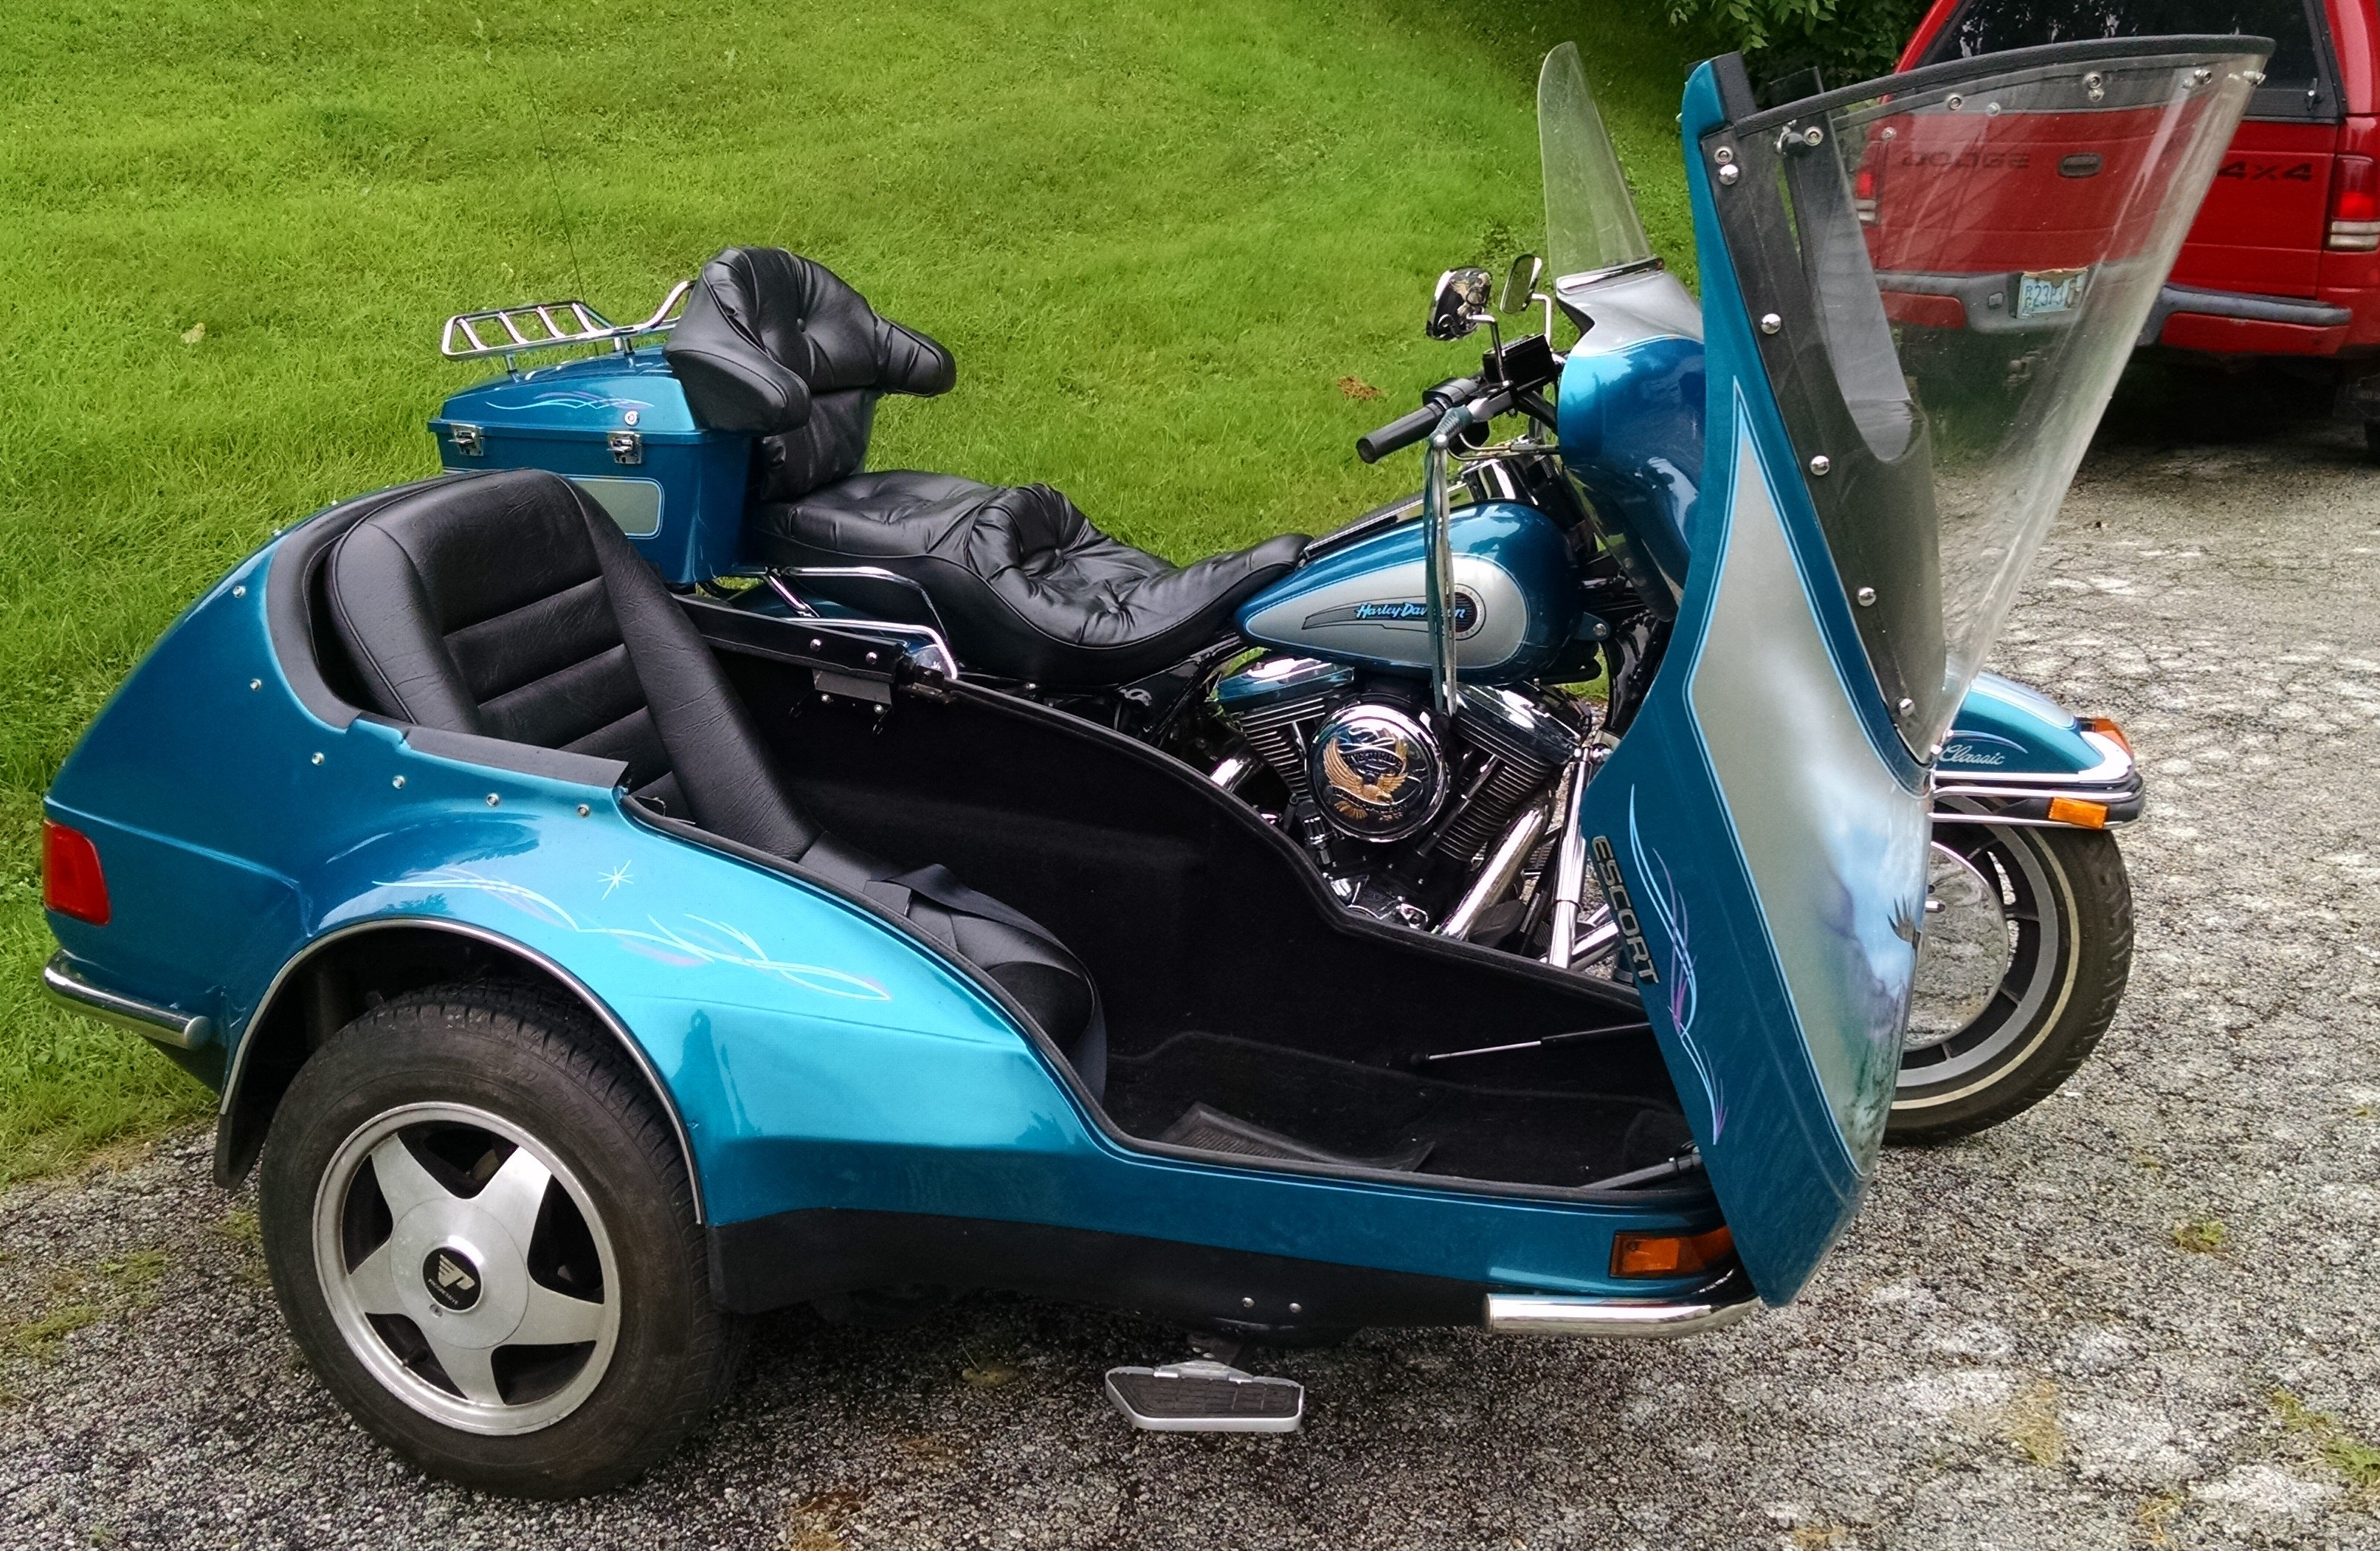 1994 Harley Davidson 174 Flhtc Electra Glide 174 Classic Teal